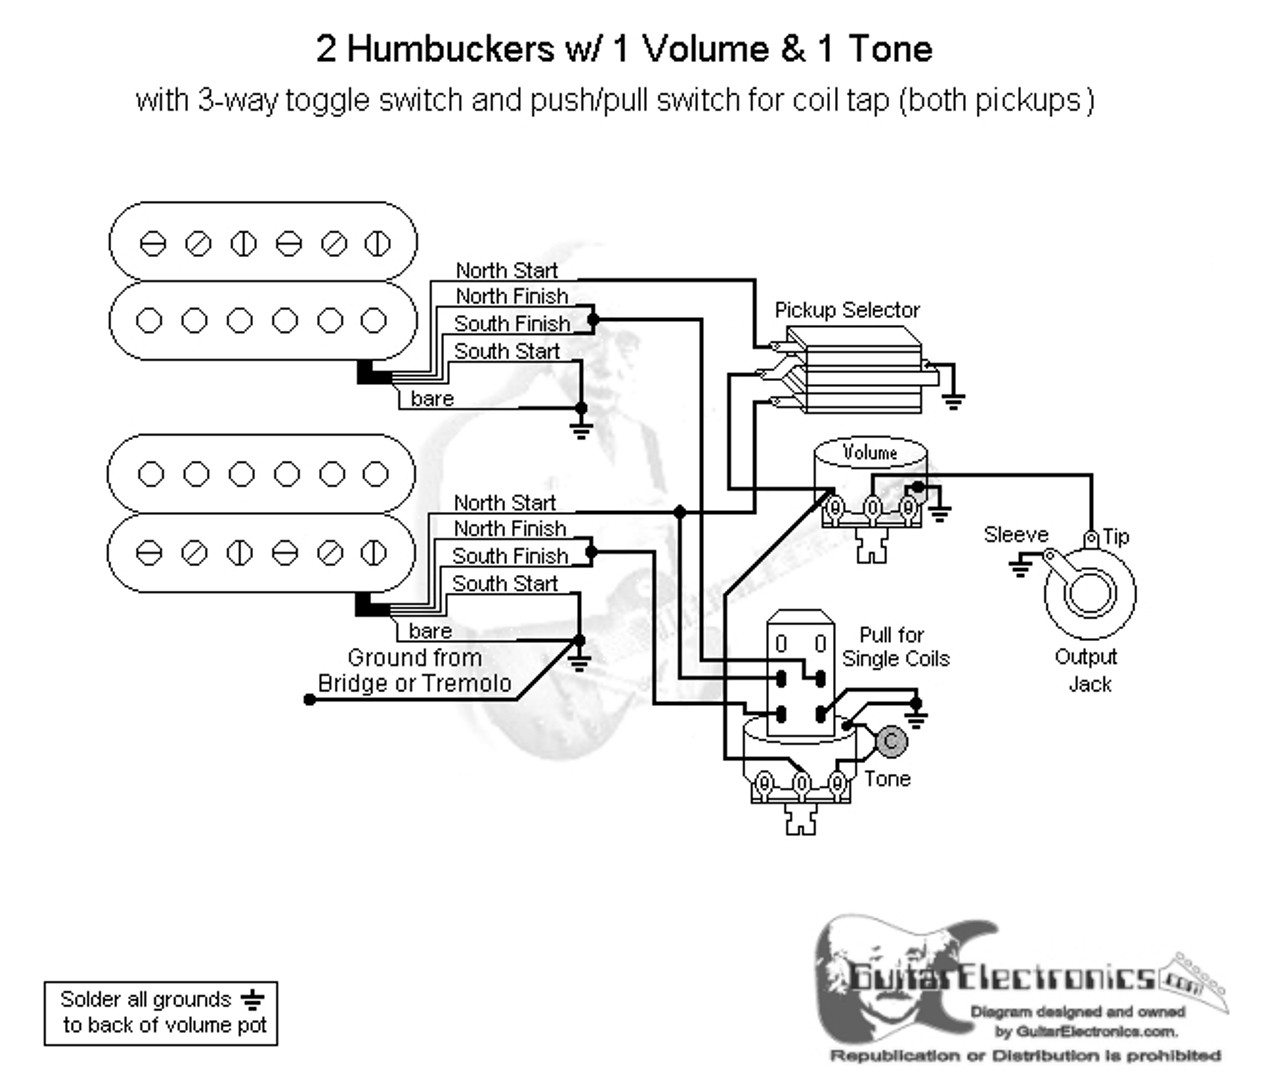 medium resolution of 2 humbuckers 3 way toggle switch 1 volume 1 tone coil tap mix wd2hh3t11 01 45715 1470694374 jpg